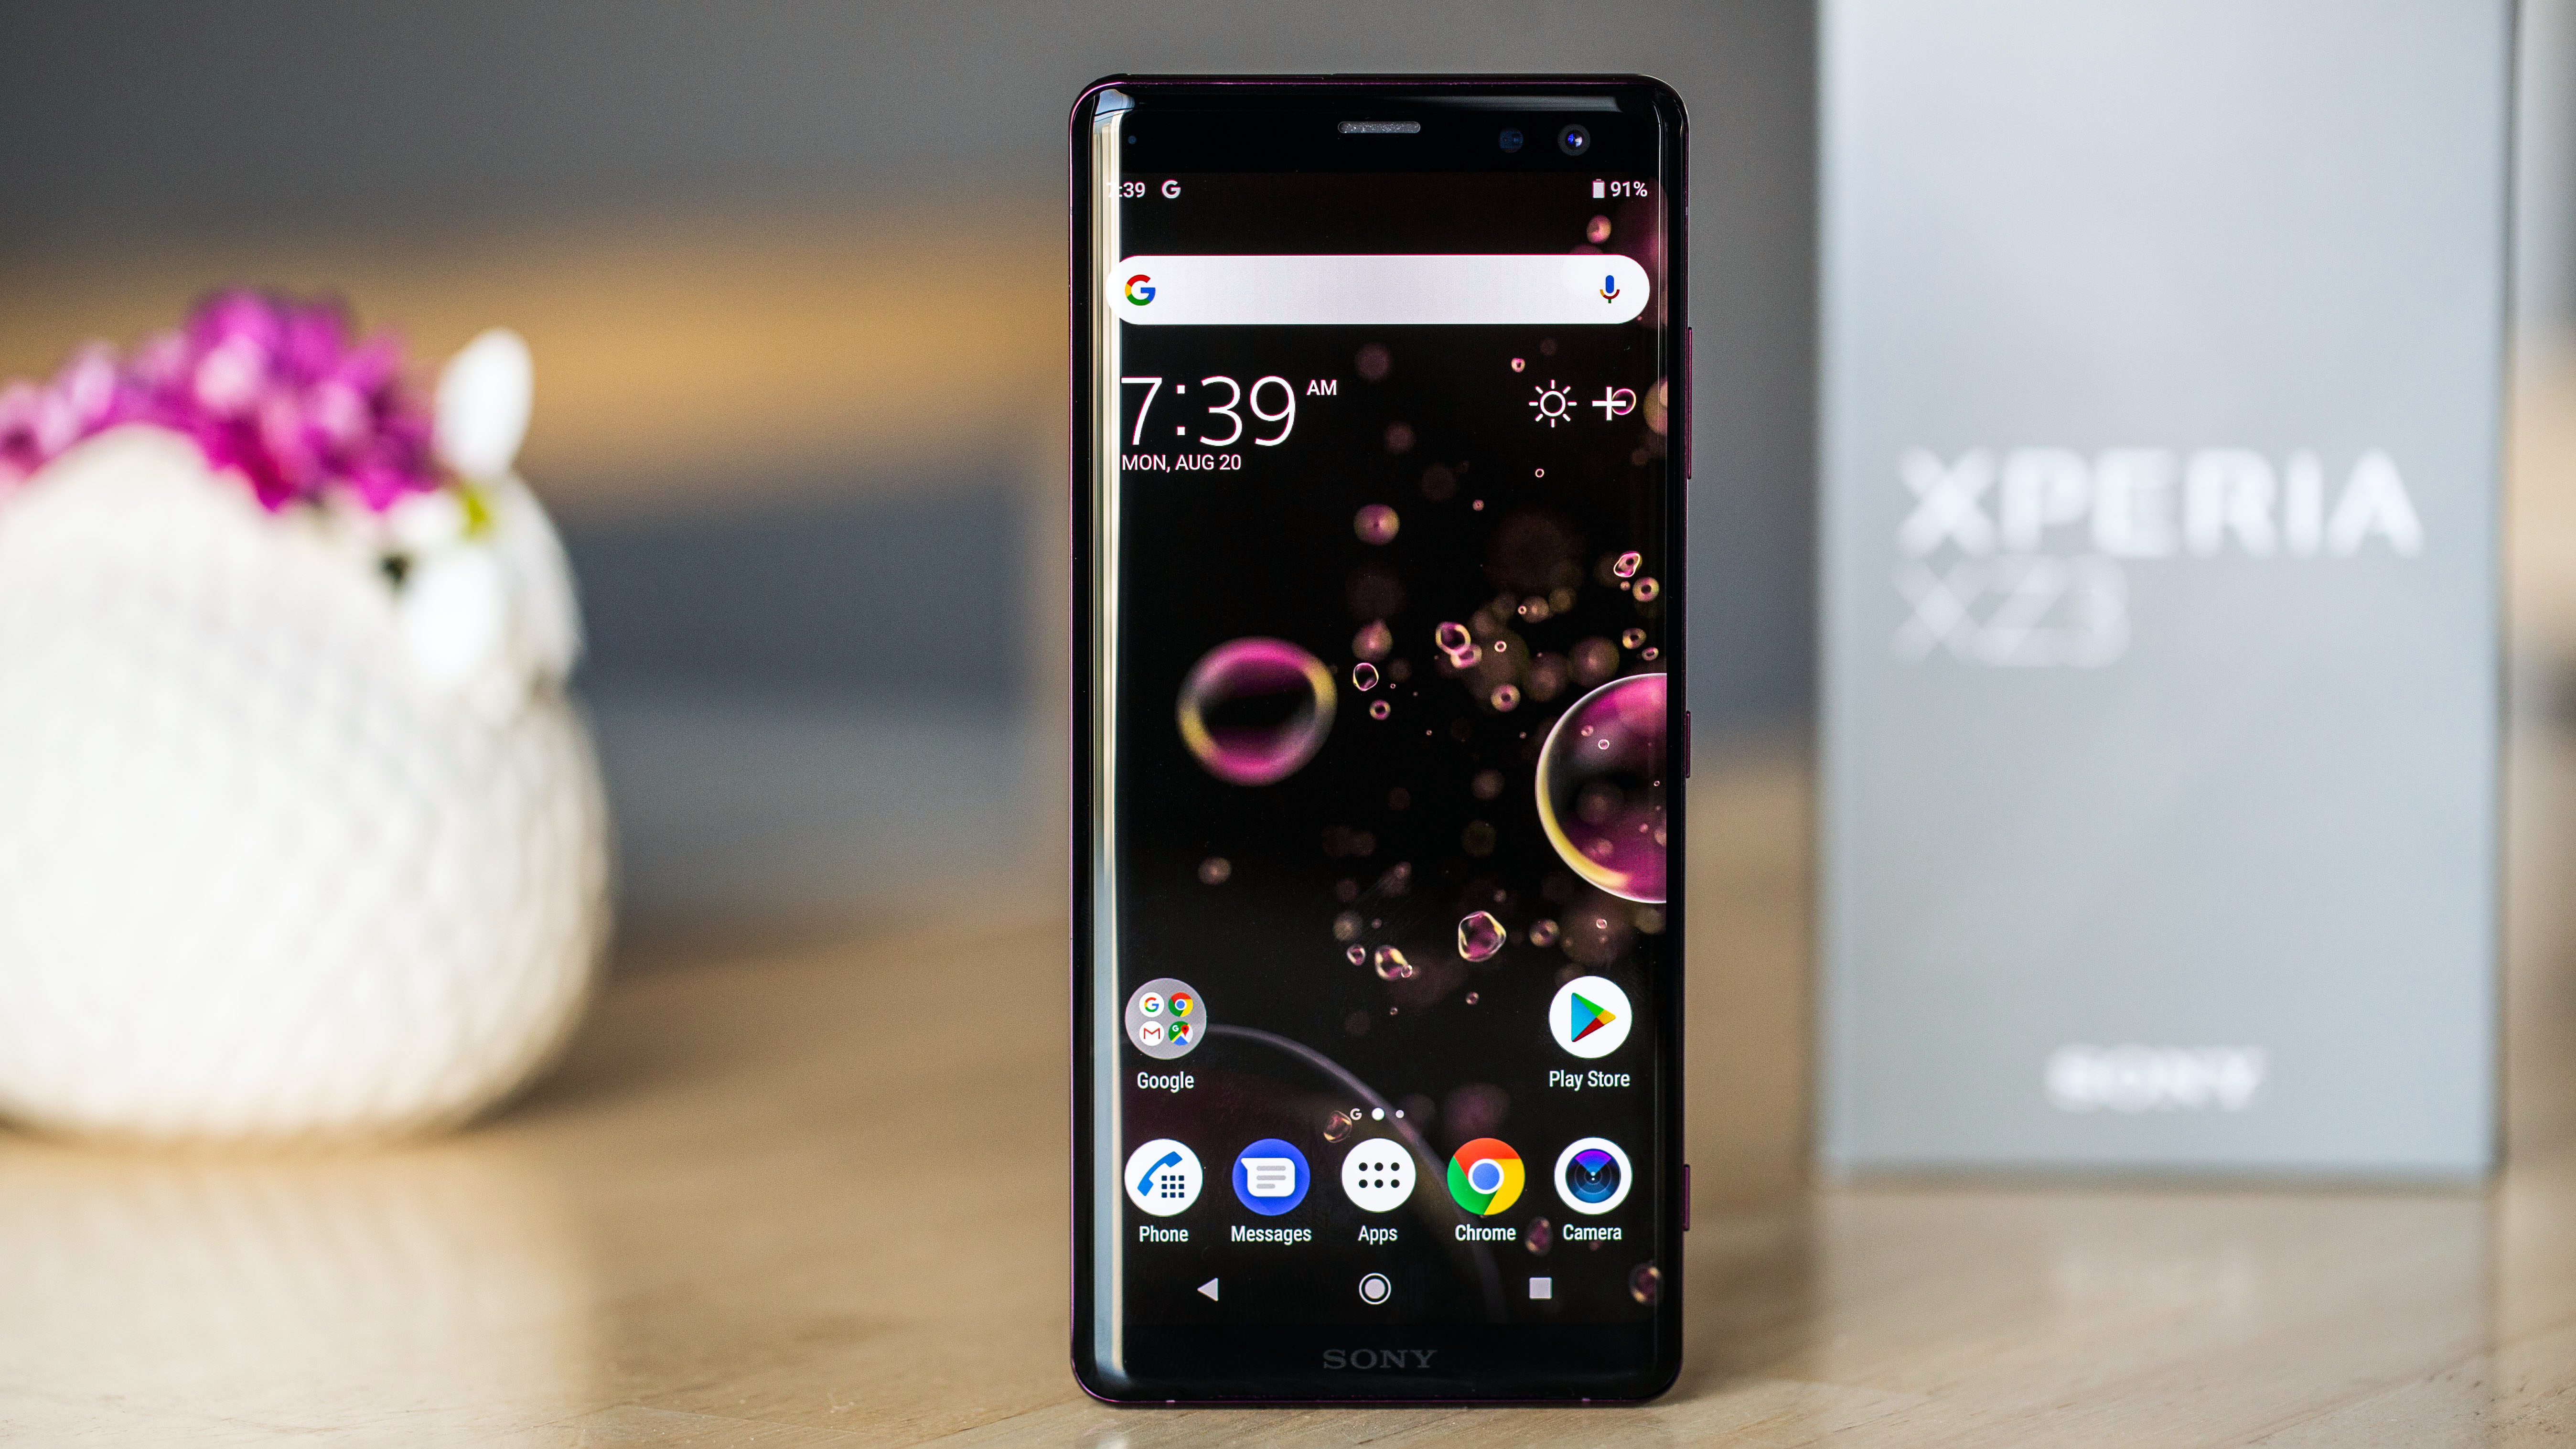 Sony Xperia XZ3 review: a great phone, except for one thing | AndroidPIT